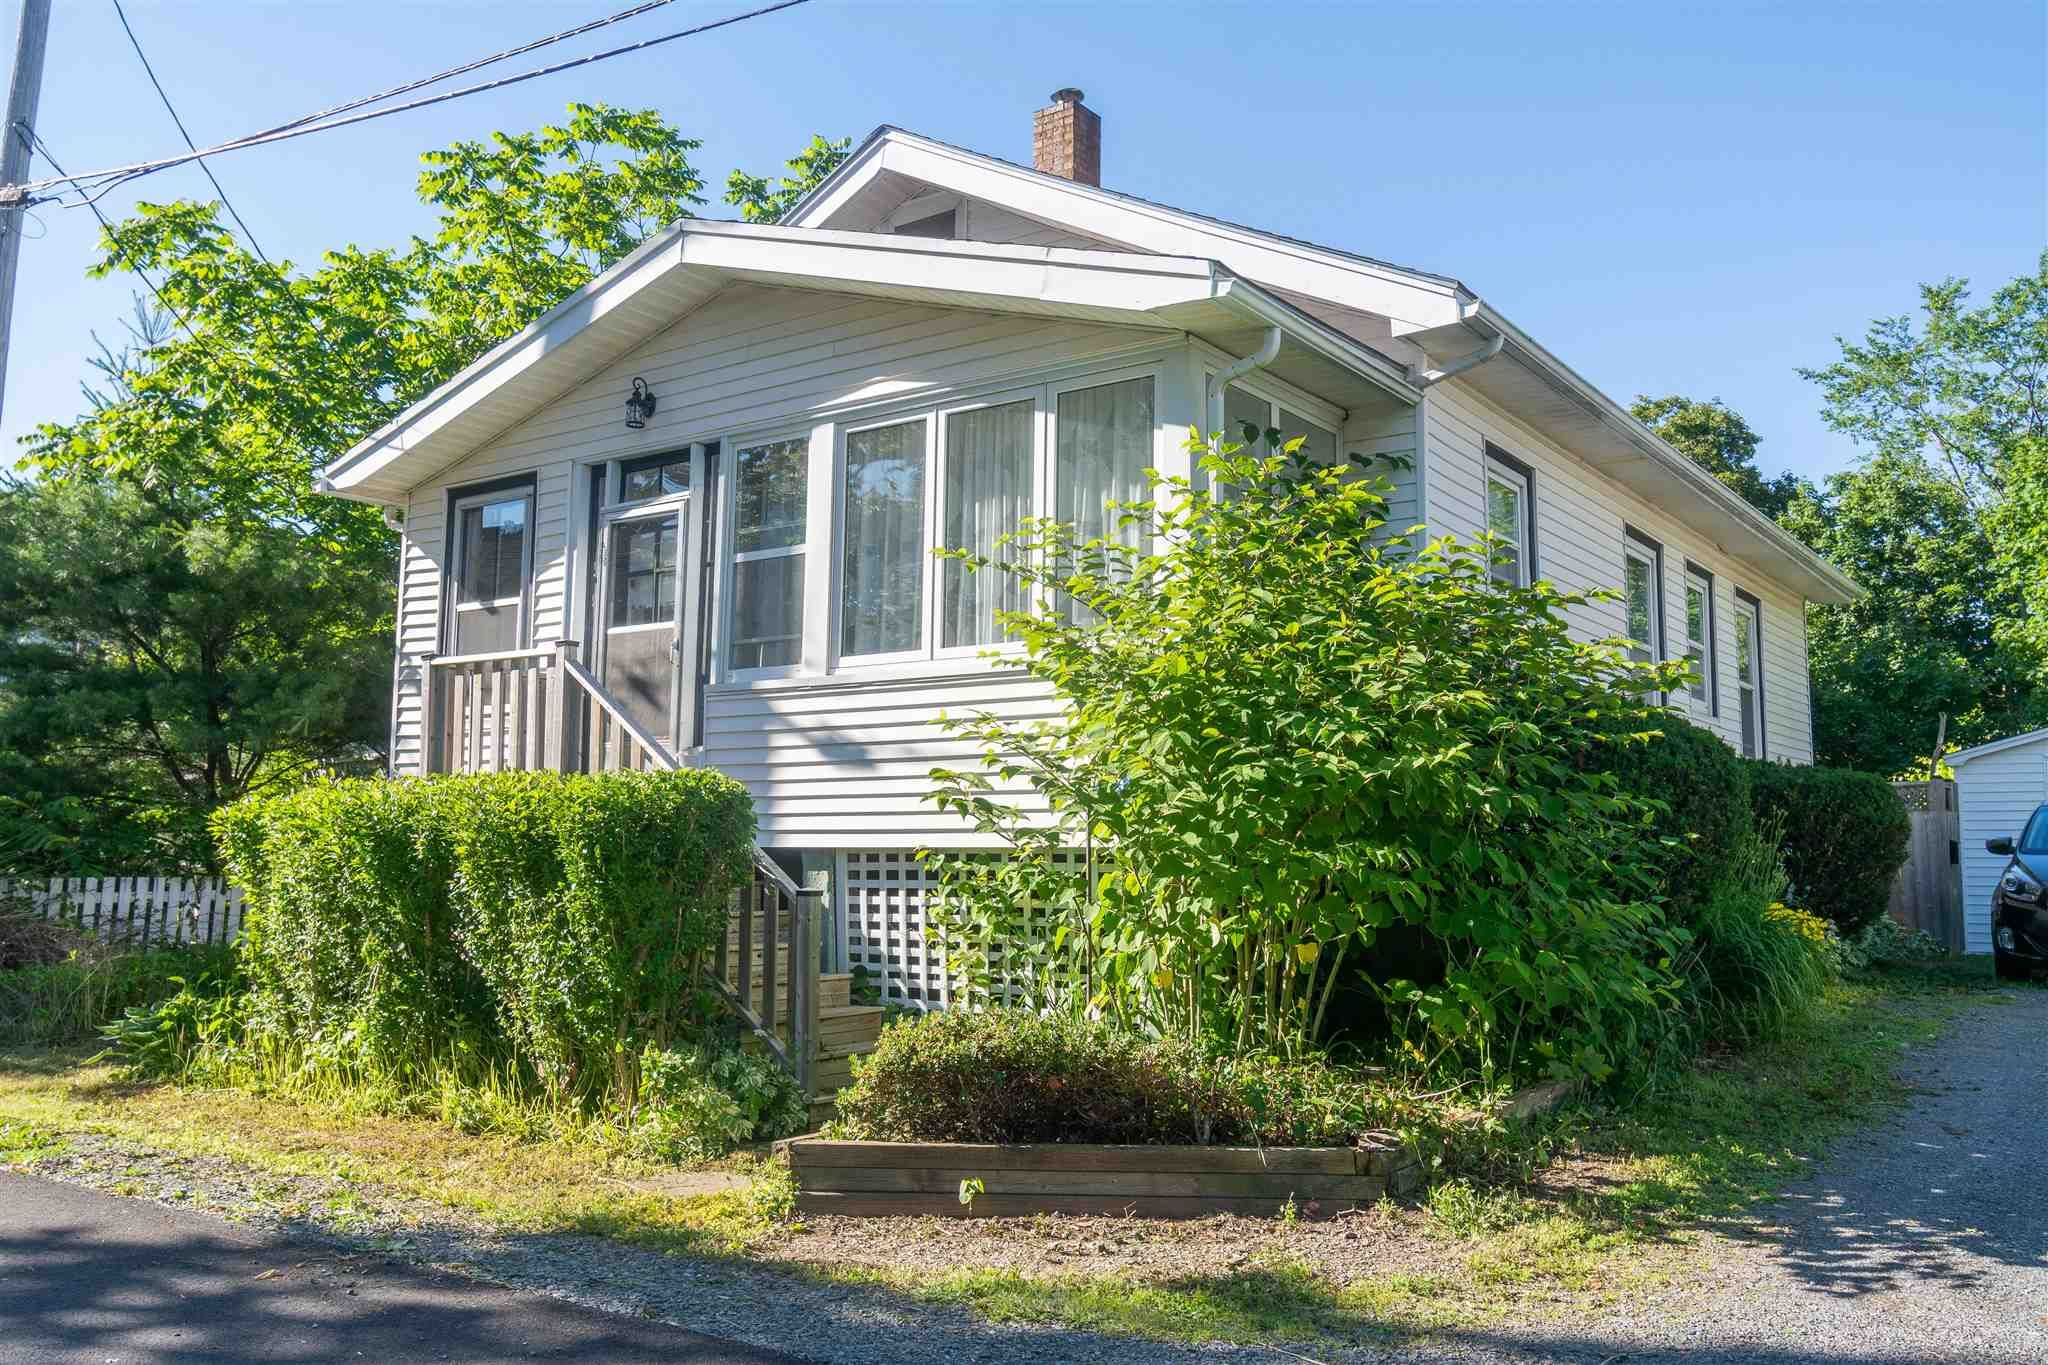 Main Photo: 171 Munroe Street in Windsor: 403-Hants County Residential for sale (Annapolis Valley)  : MLS®# 202116941